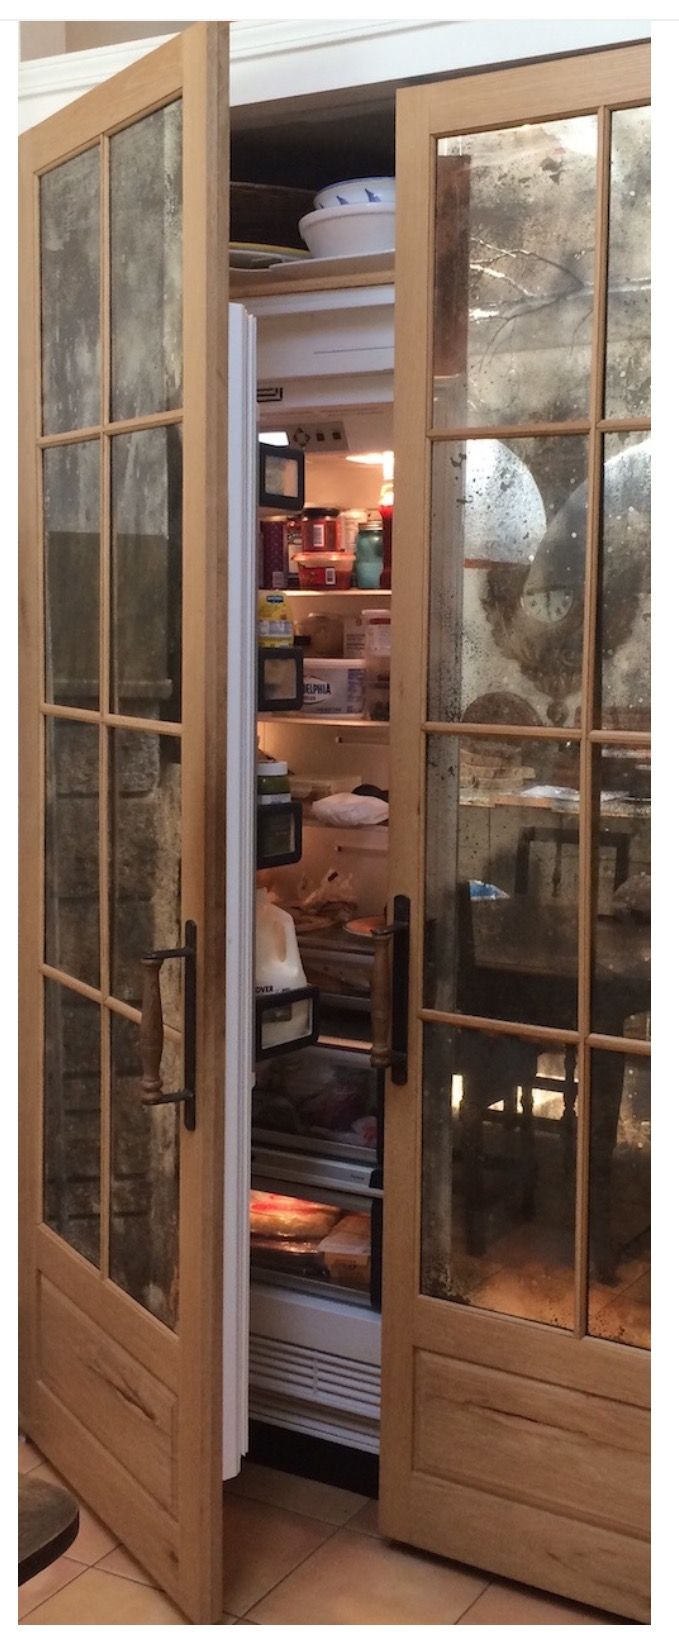 Refrigerator Door Refaced With A Pair Of French Doors And Antique Glass Glass Pantry Door French Doors Interior Interior Doors Stained